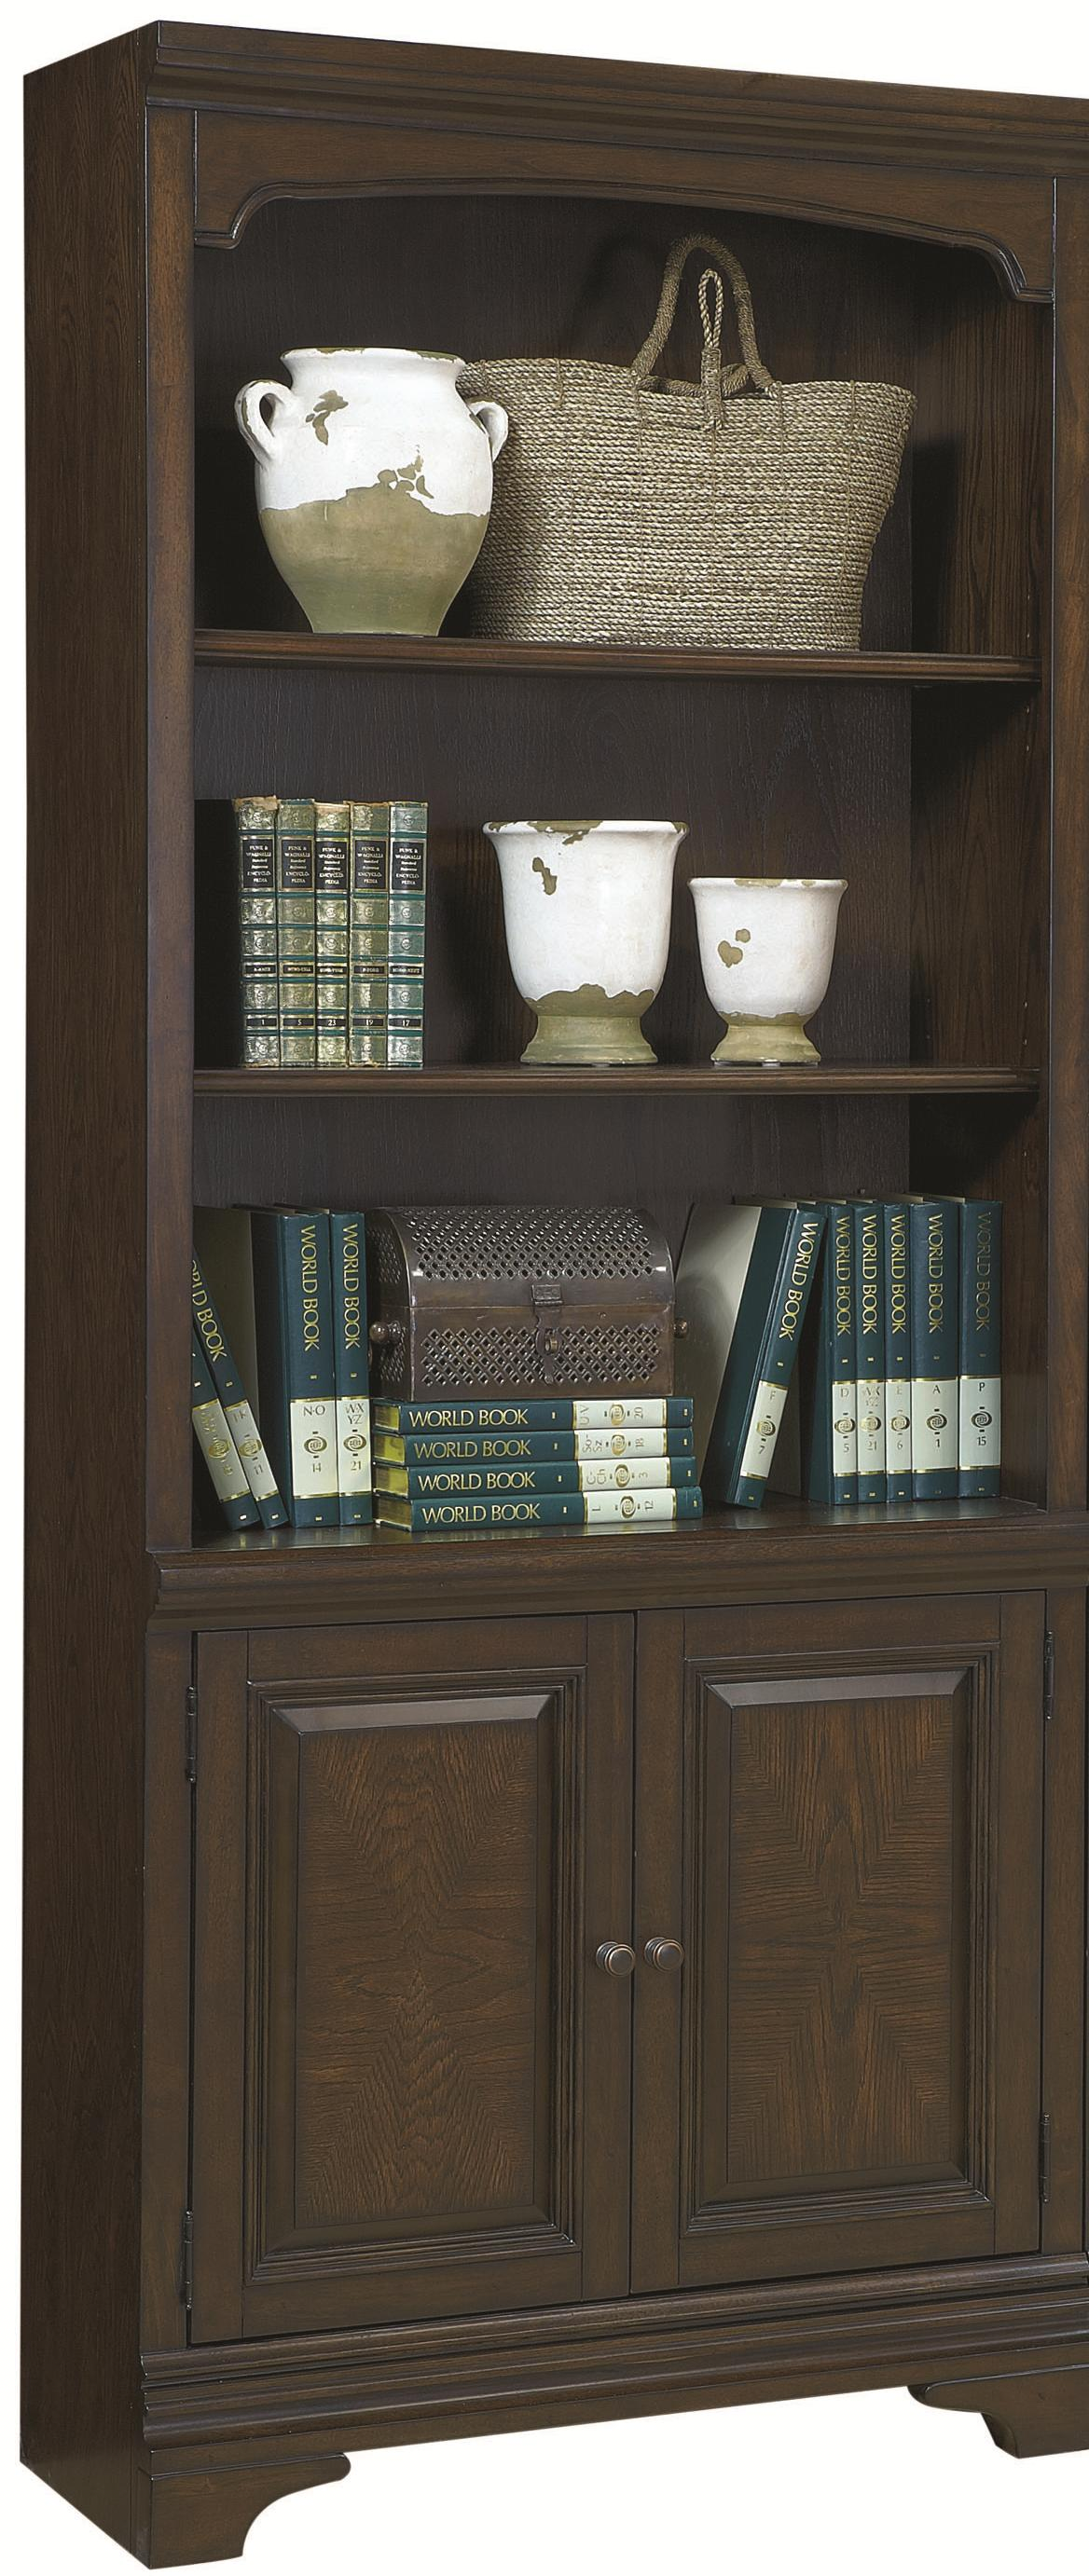 Highland Court Addams Addams 2 Door Bookcase - Item Number: I24-332